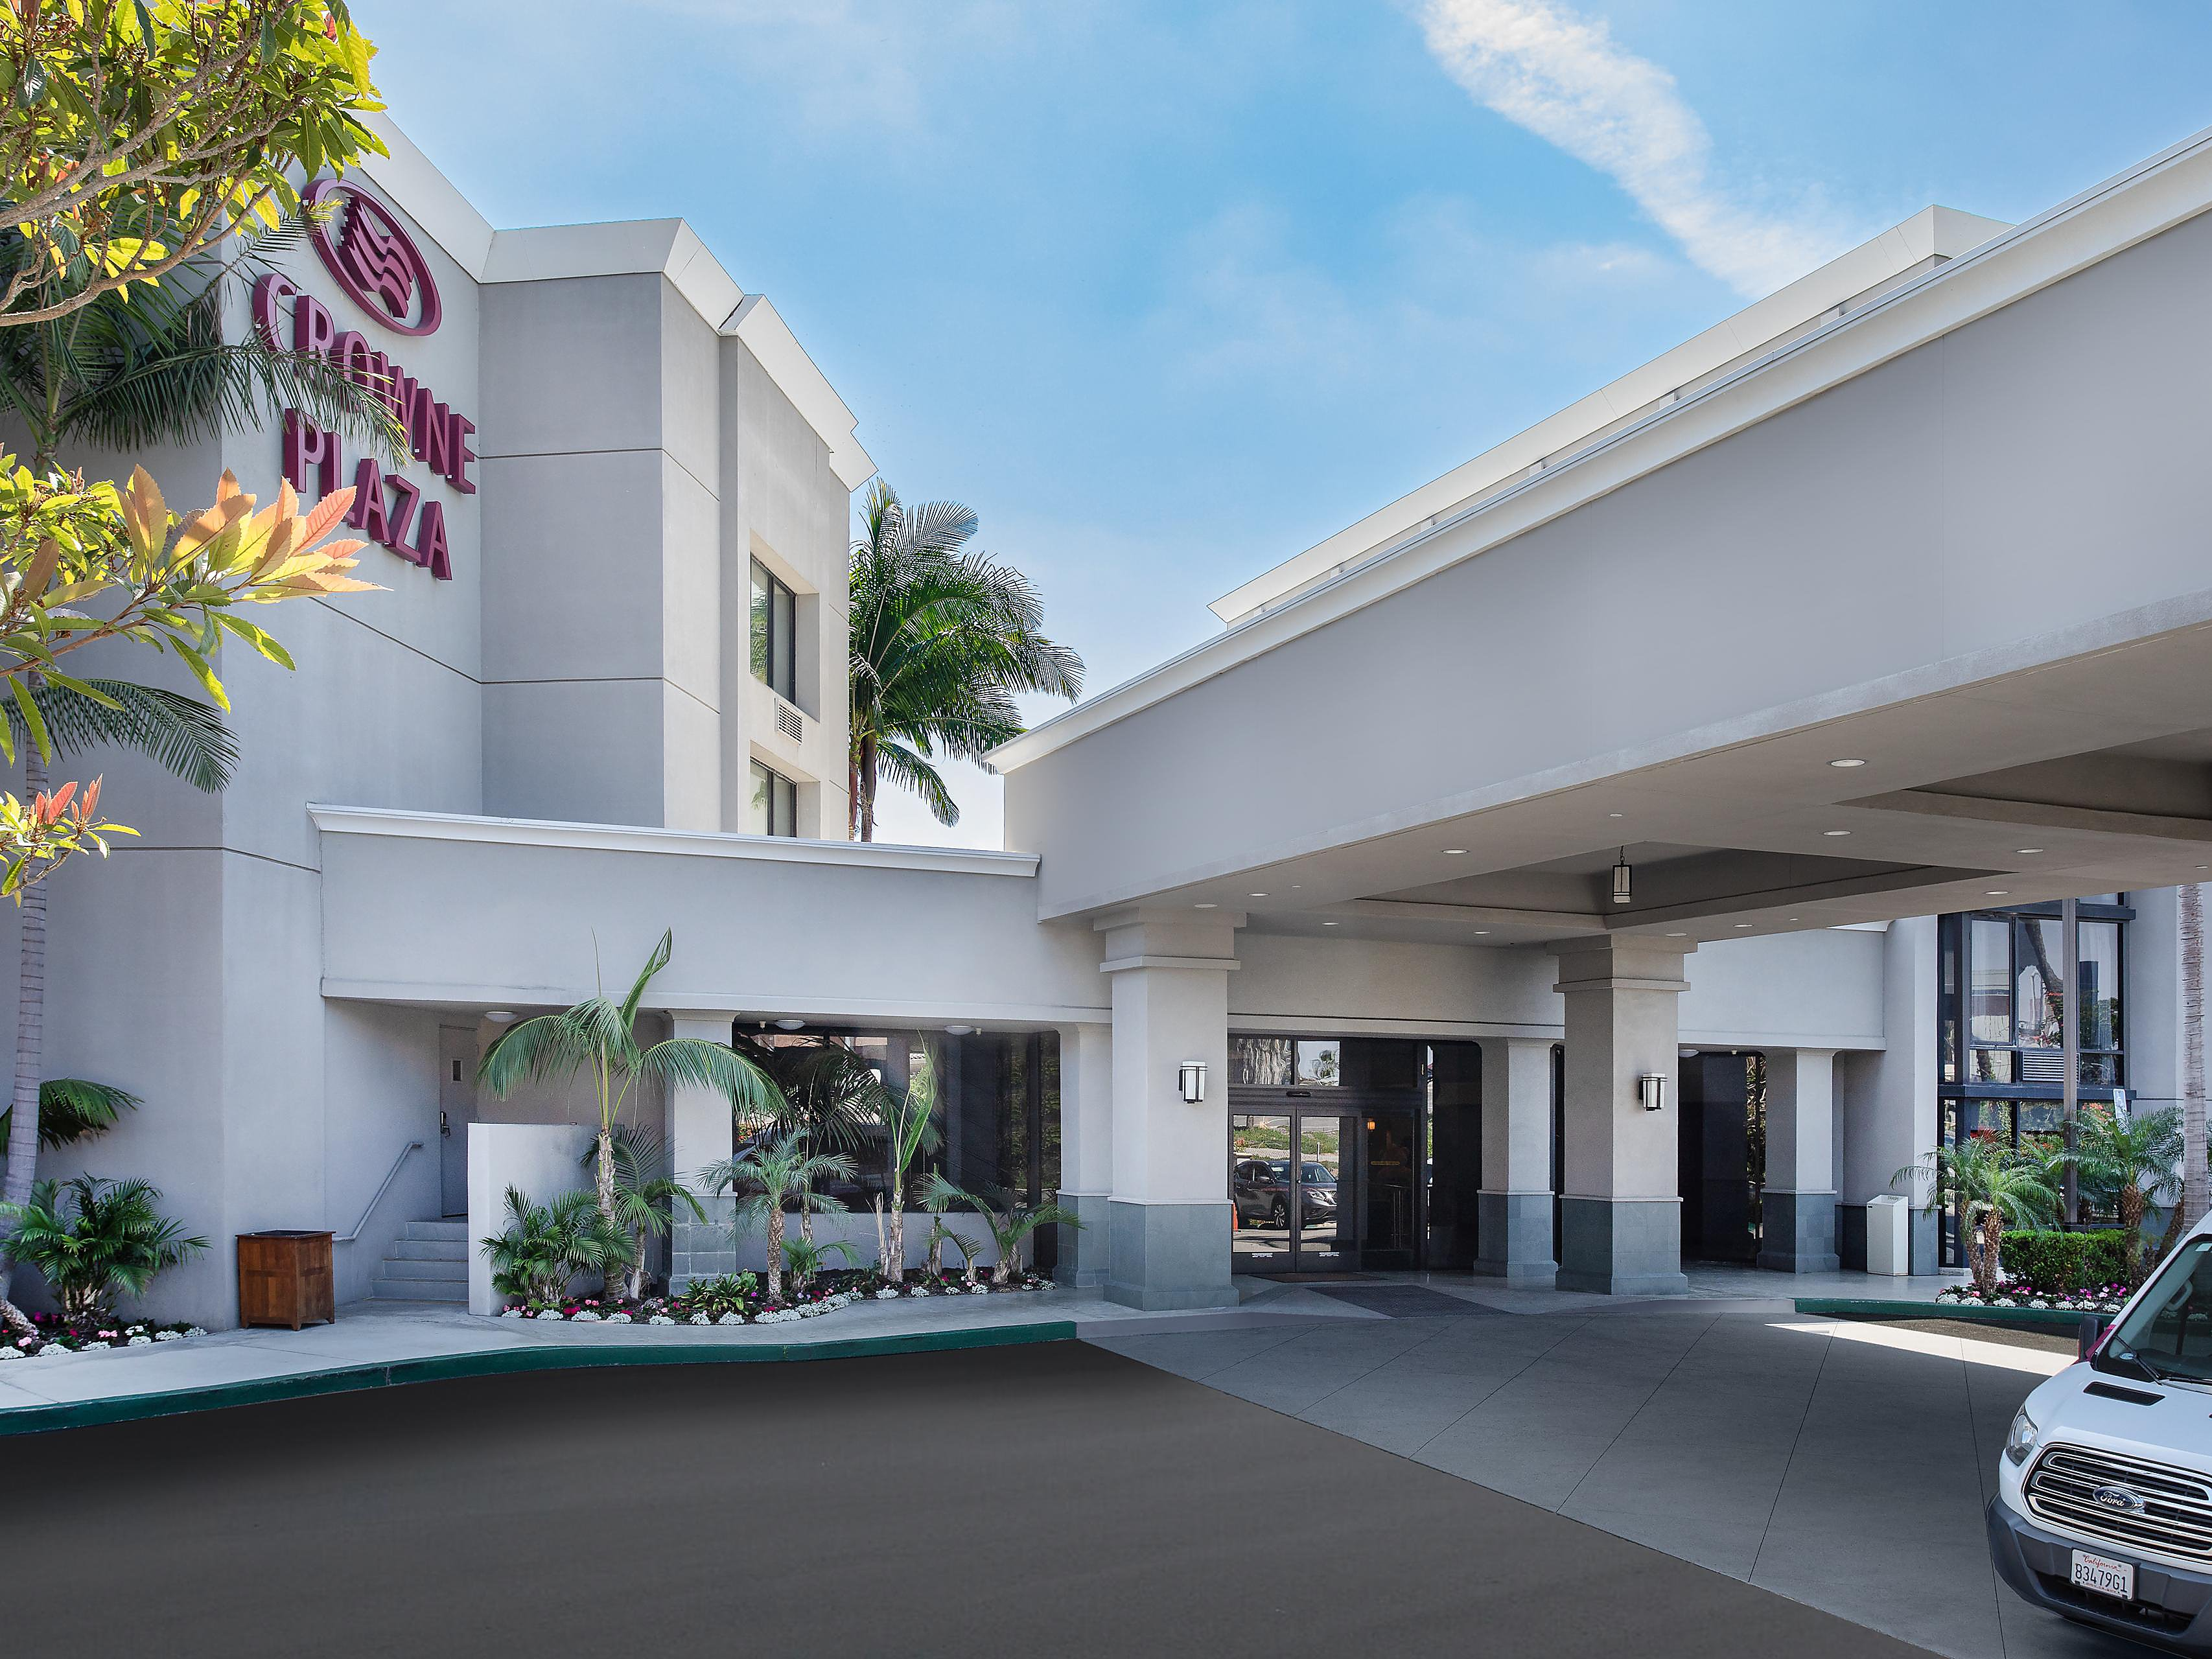 Hotels in Costa Mesa near John Wayne Airport | Crowne Plaza